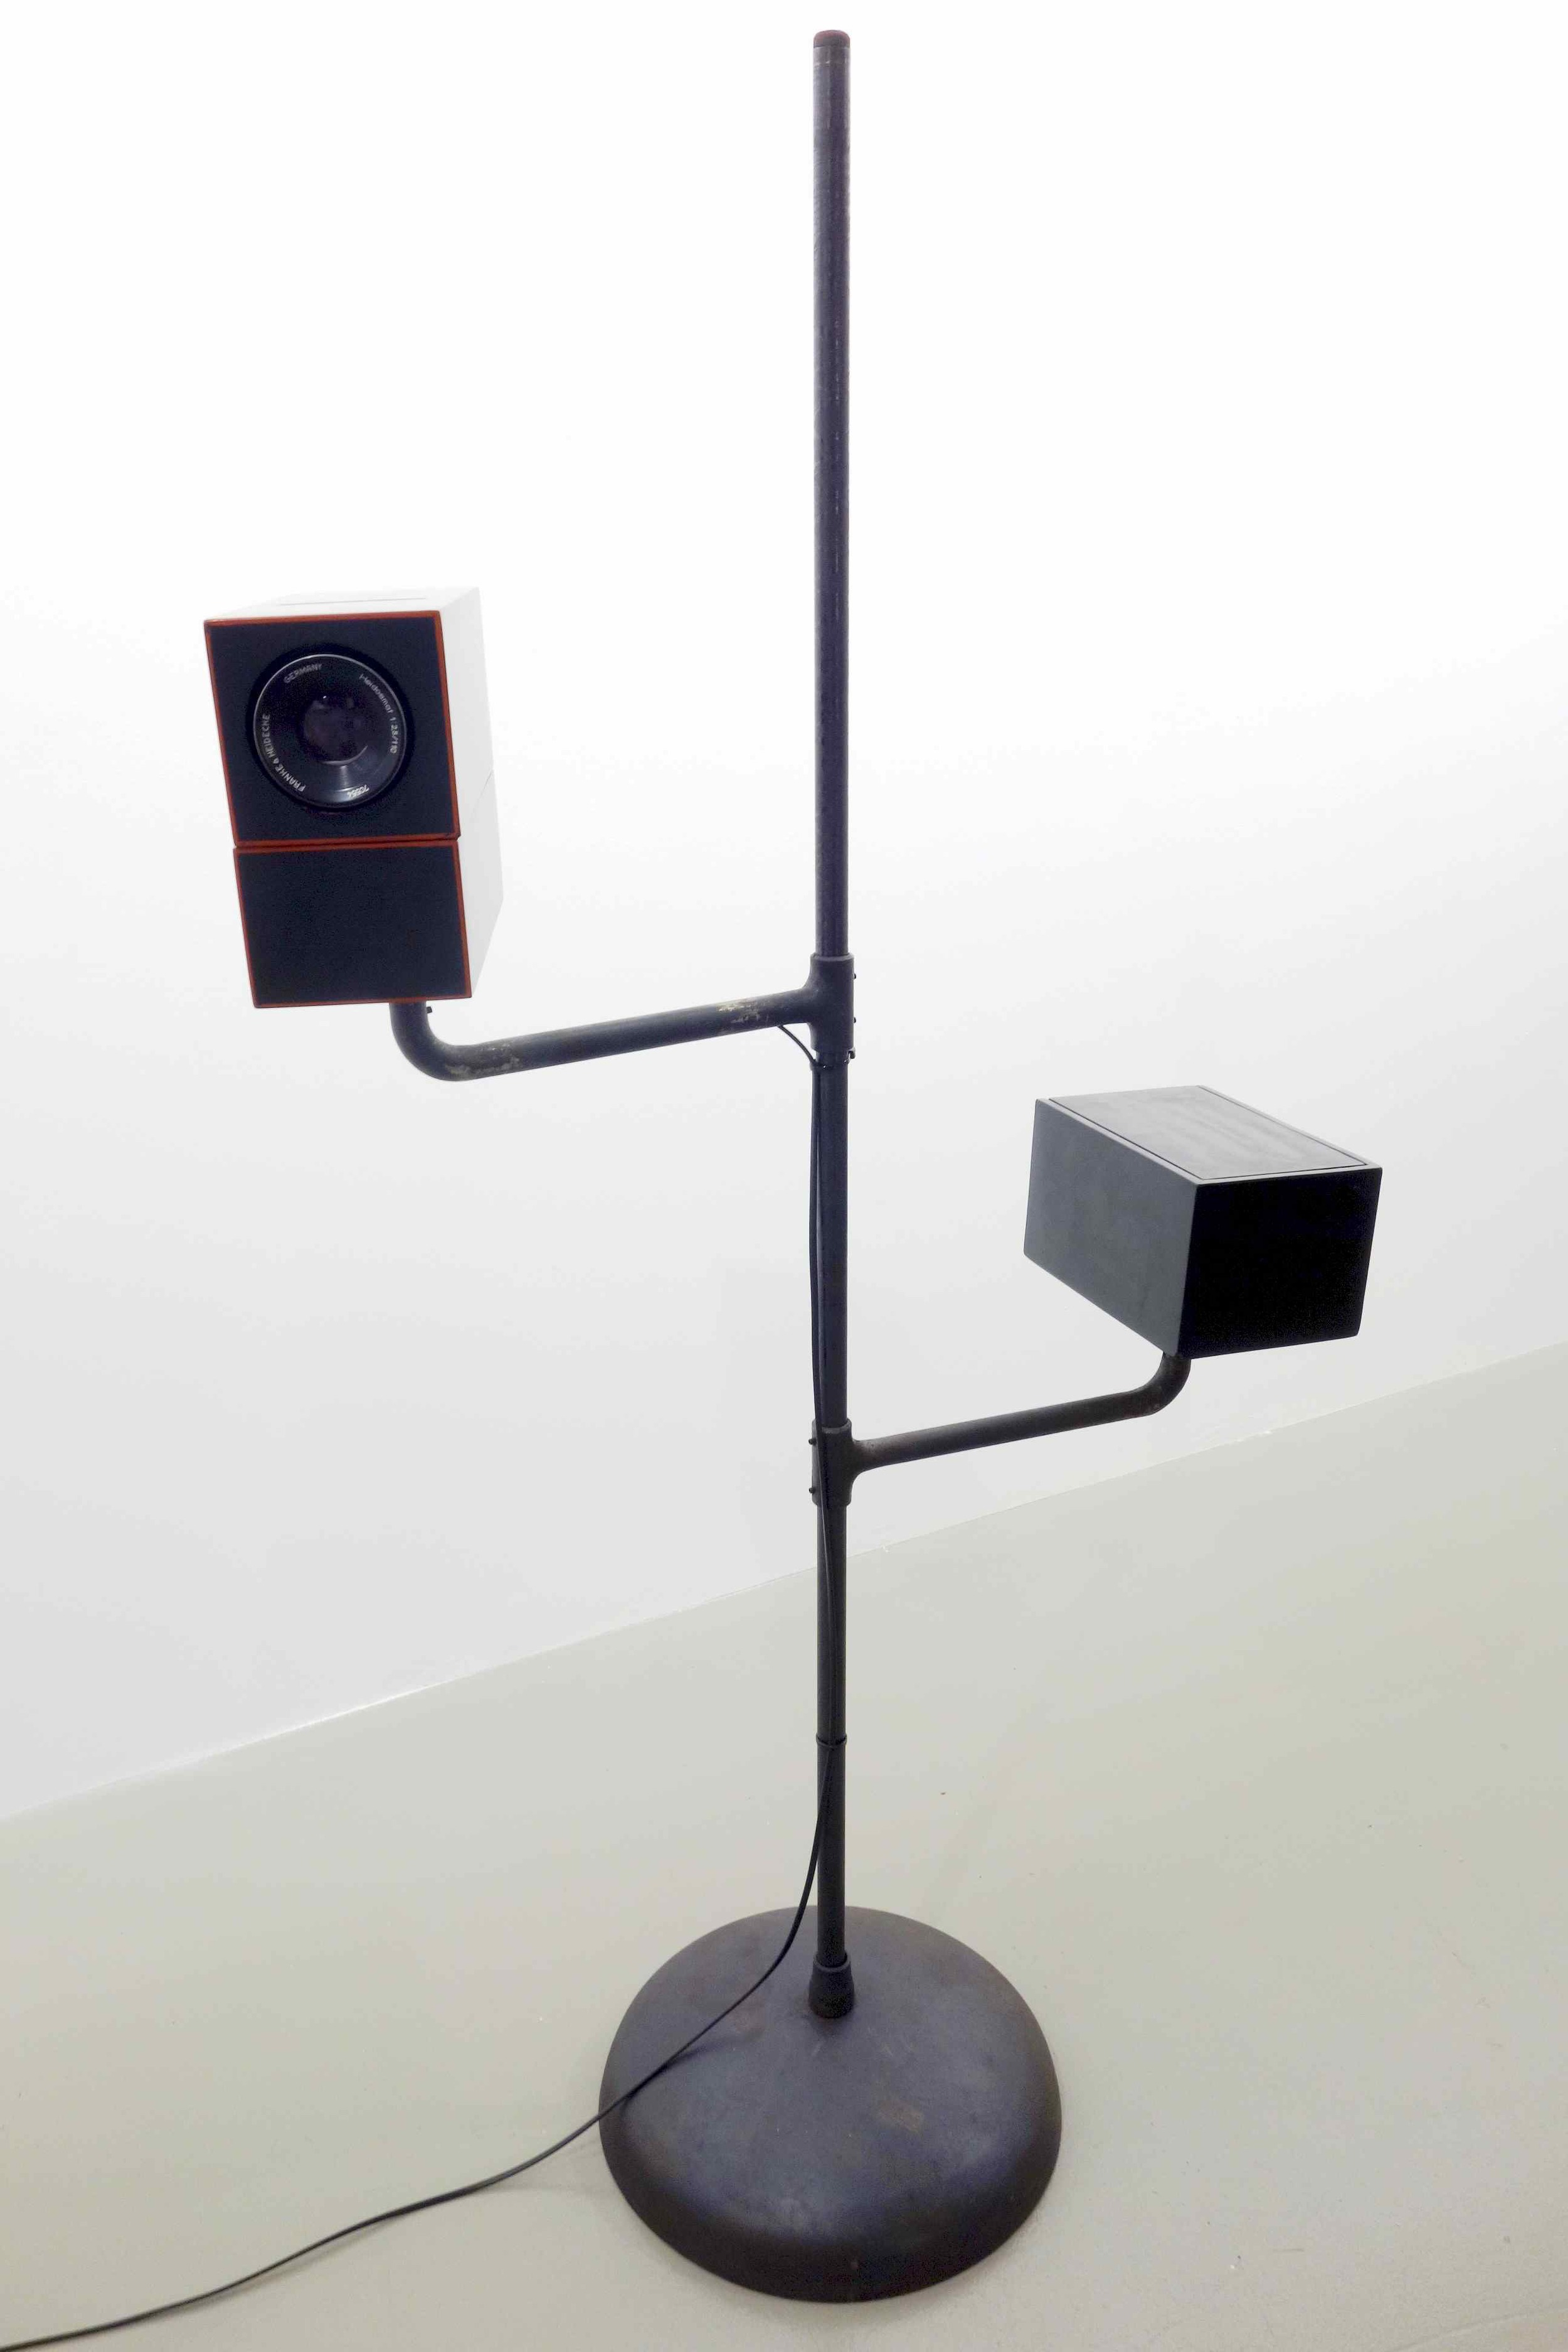 Lacquerscope #2  2014 Resin composite medium format (50mm) projector. Iron stand, base and swivel arms, 174.5 x 102 cm